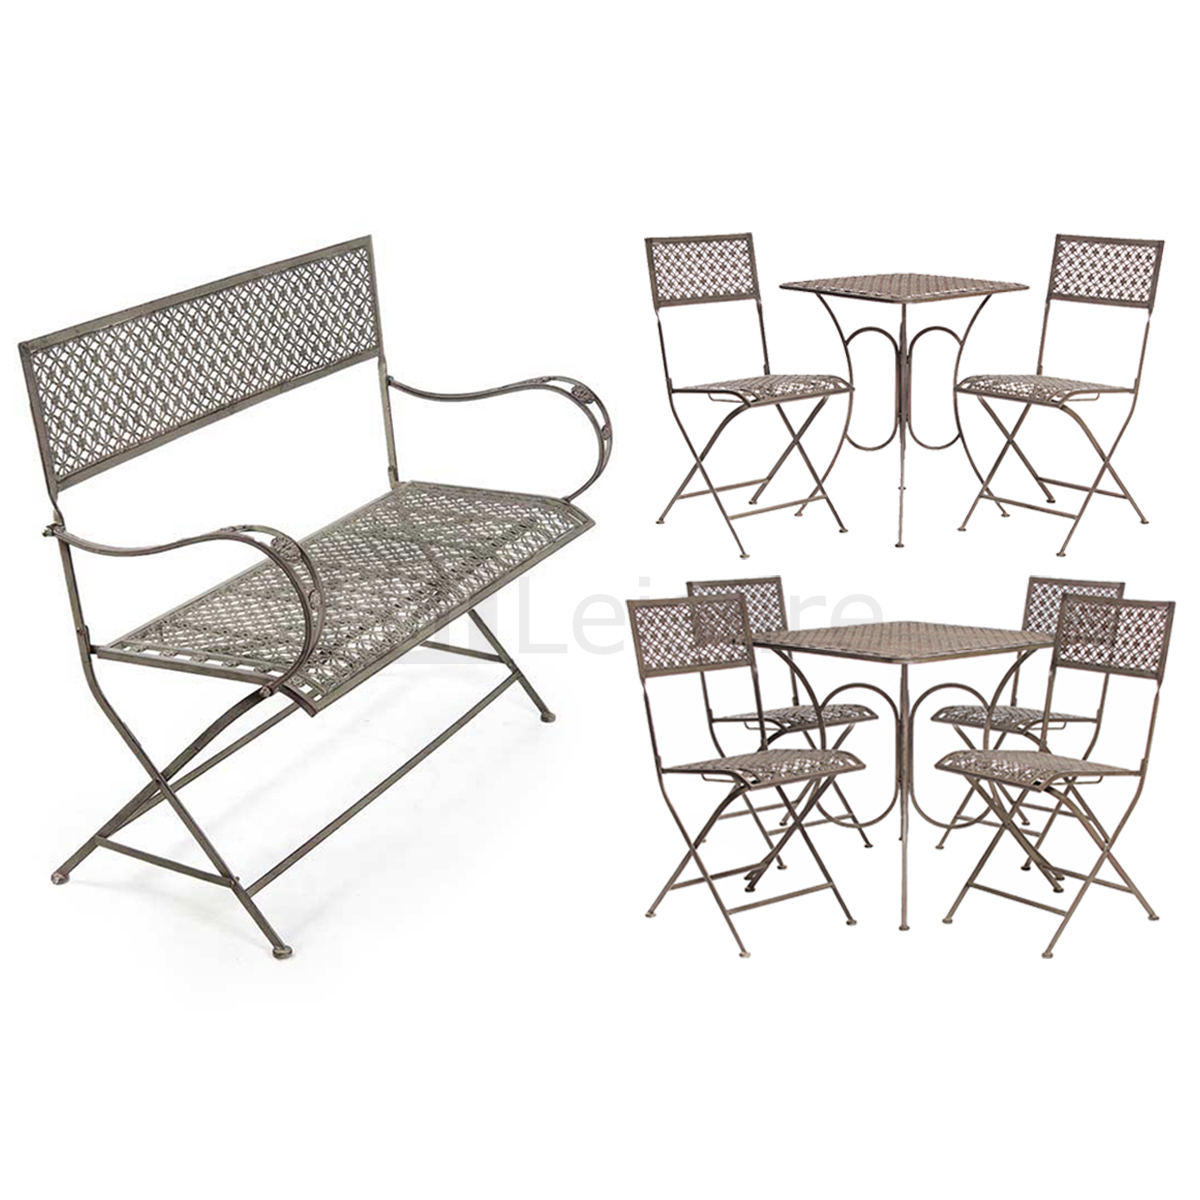 Vintage steel bistro furniture set garden table and chairs for Metal patio table and chairs set